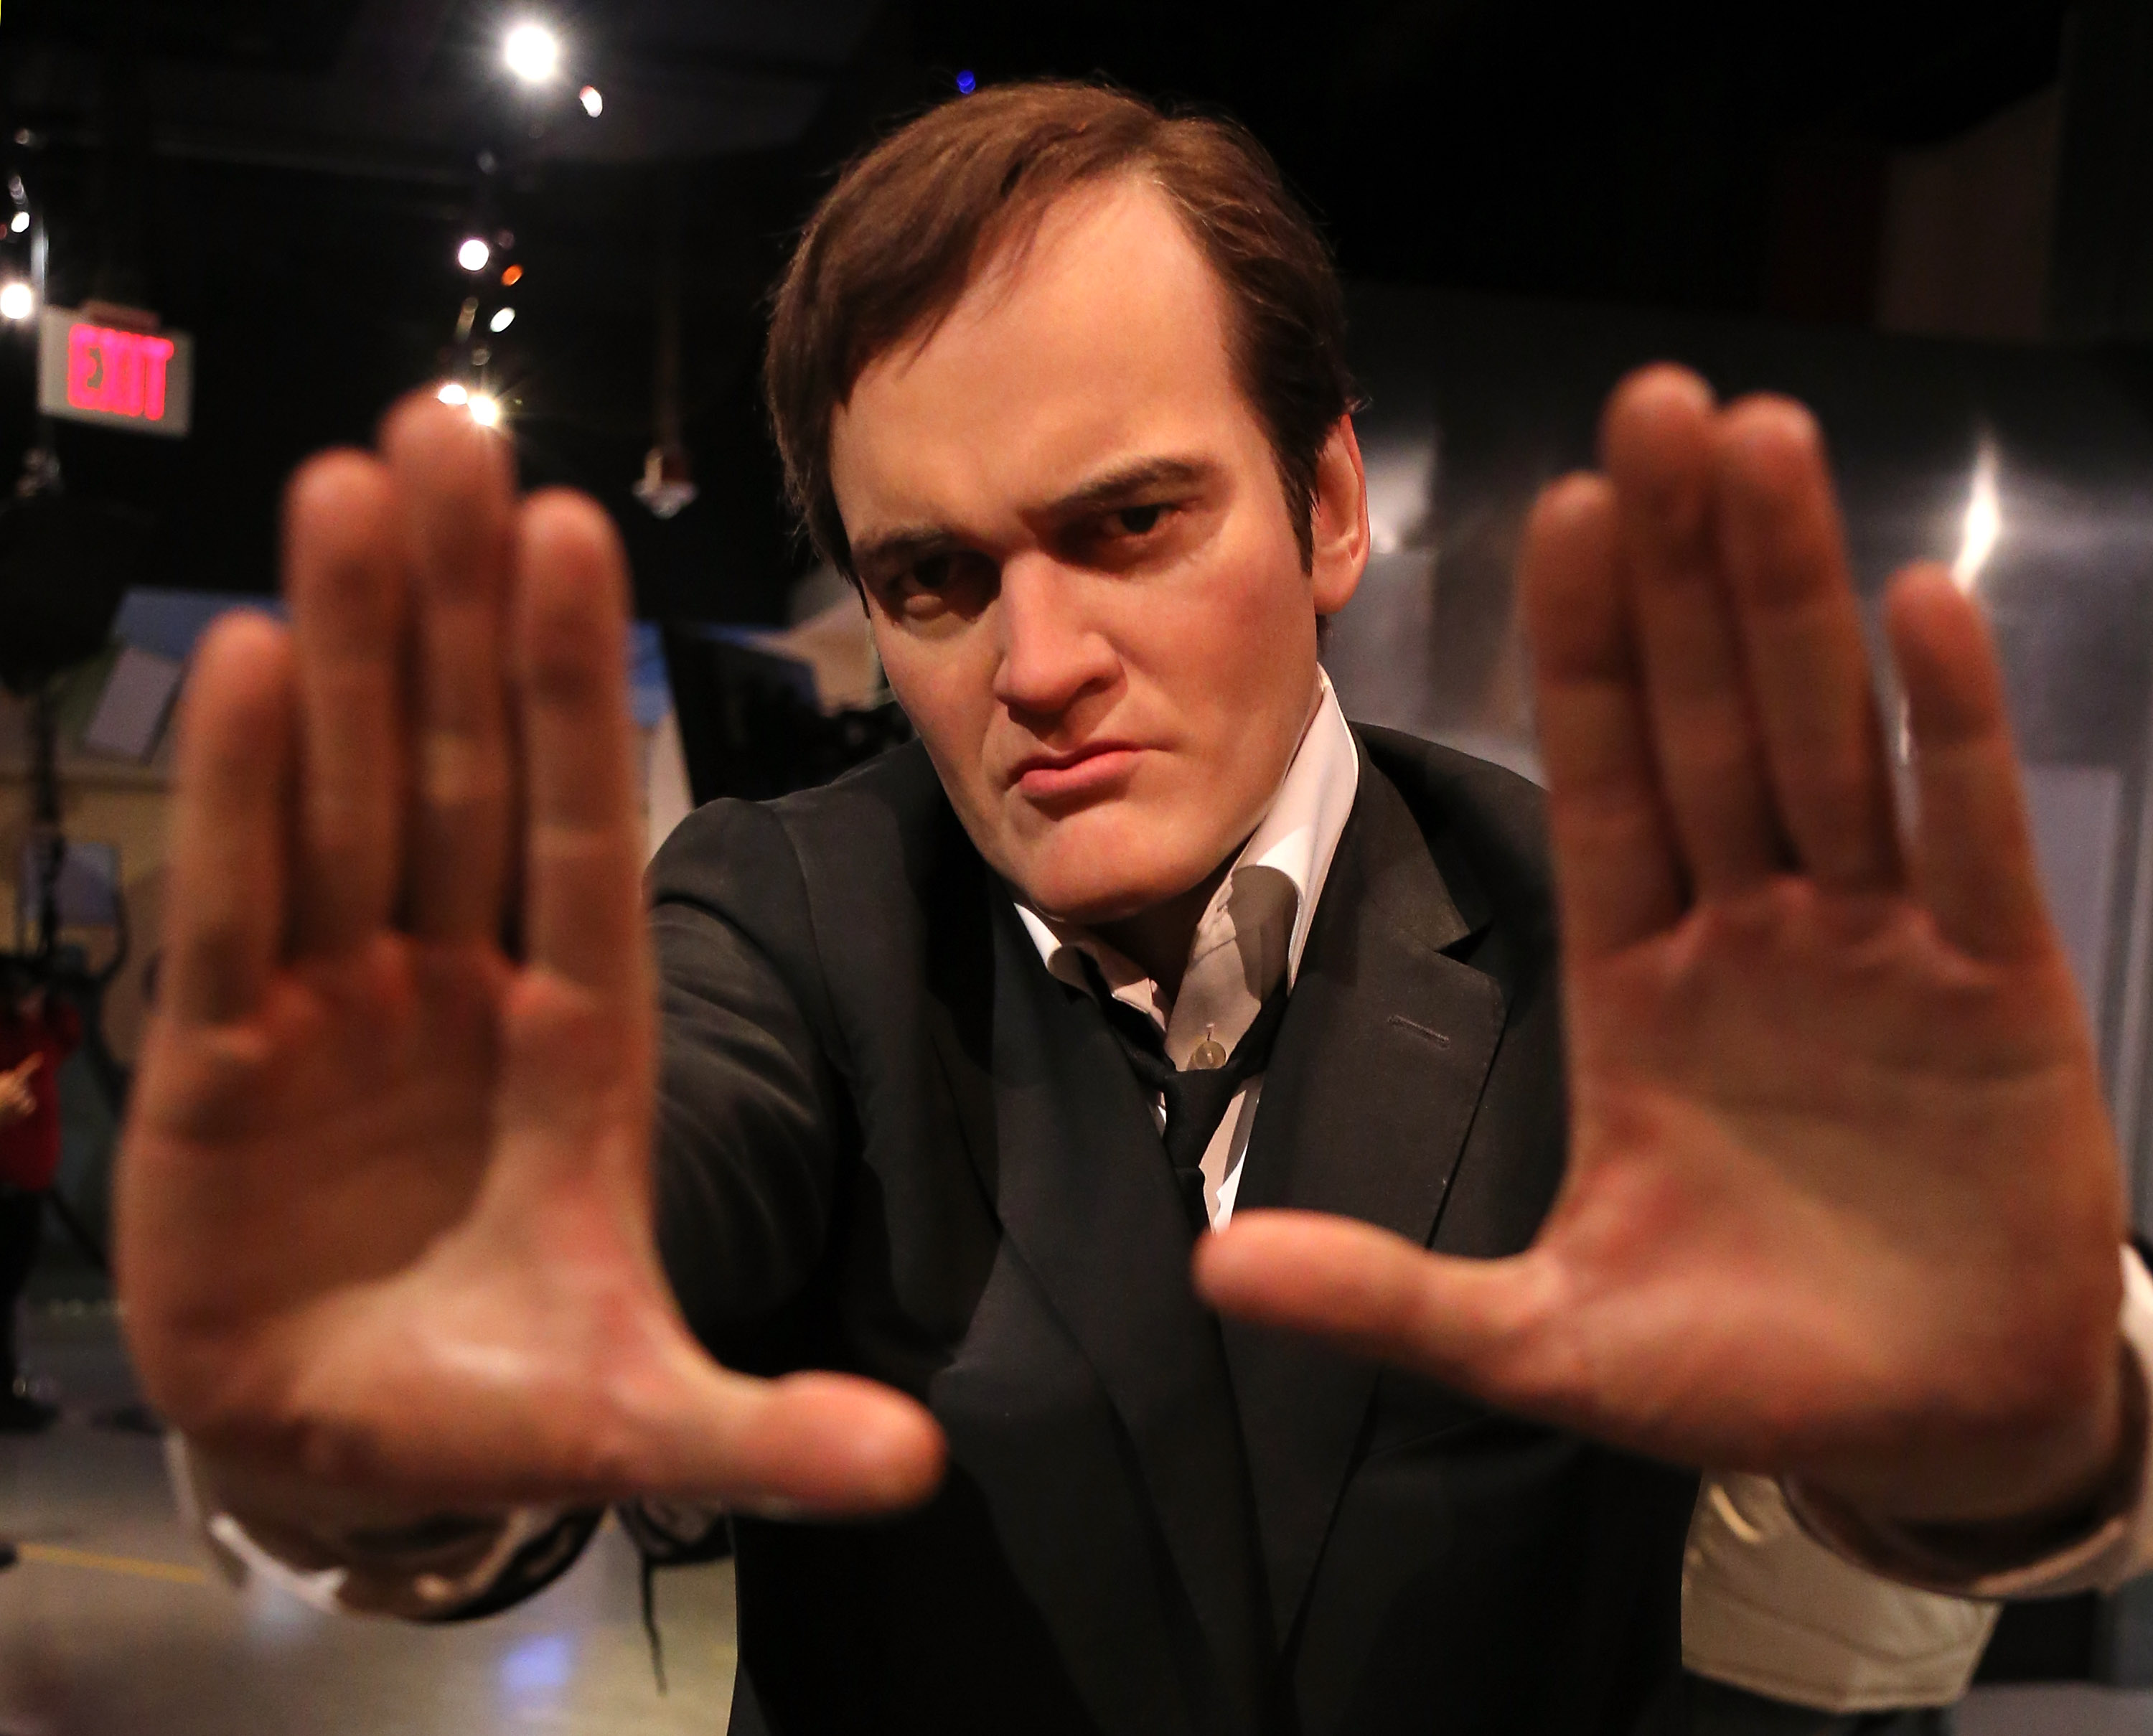 HOLLYWOOD, CA - JANUARY 06:  A wax figure of director Quentin Tarantino is displayed at Madame Tussauds on January 6, 2014 in